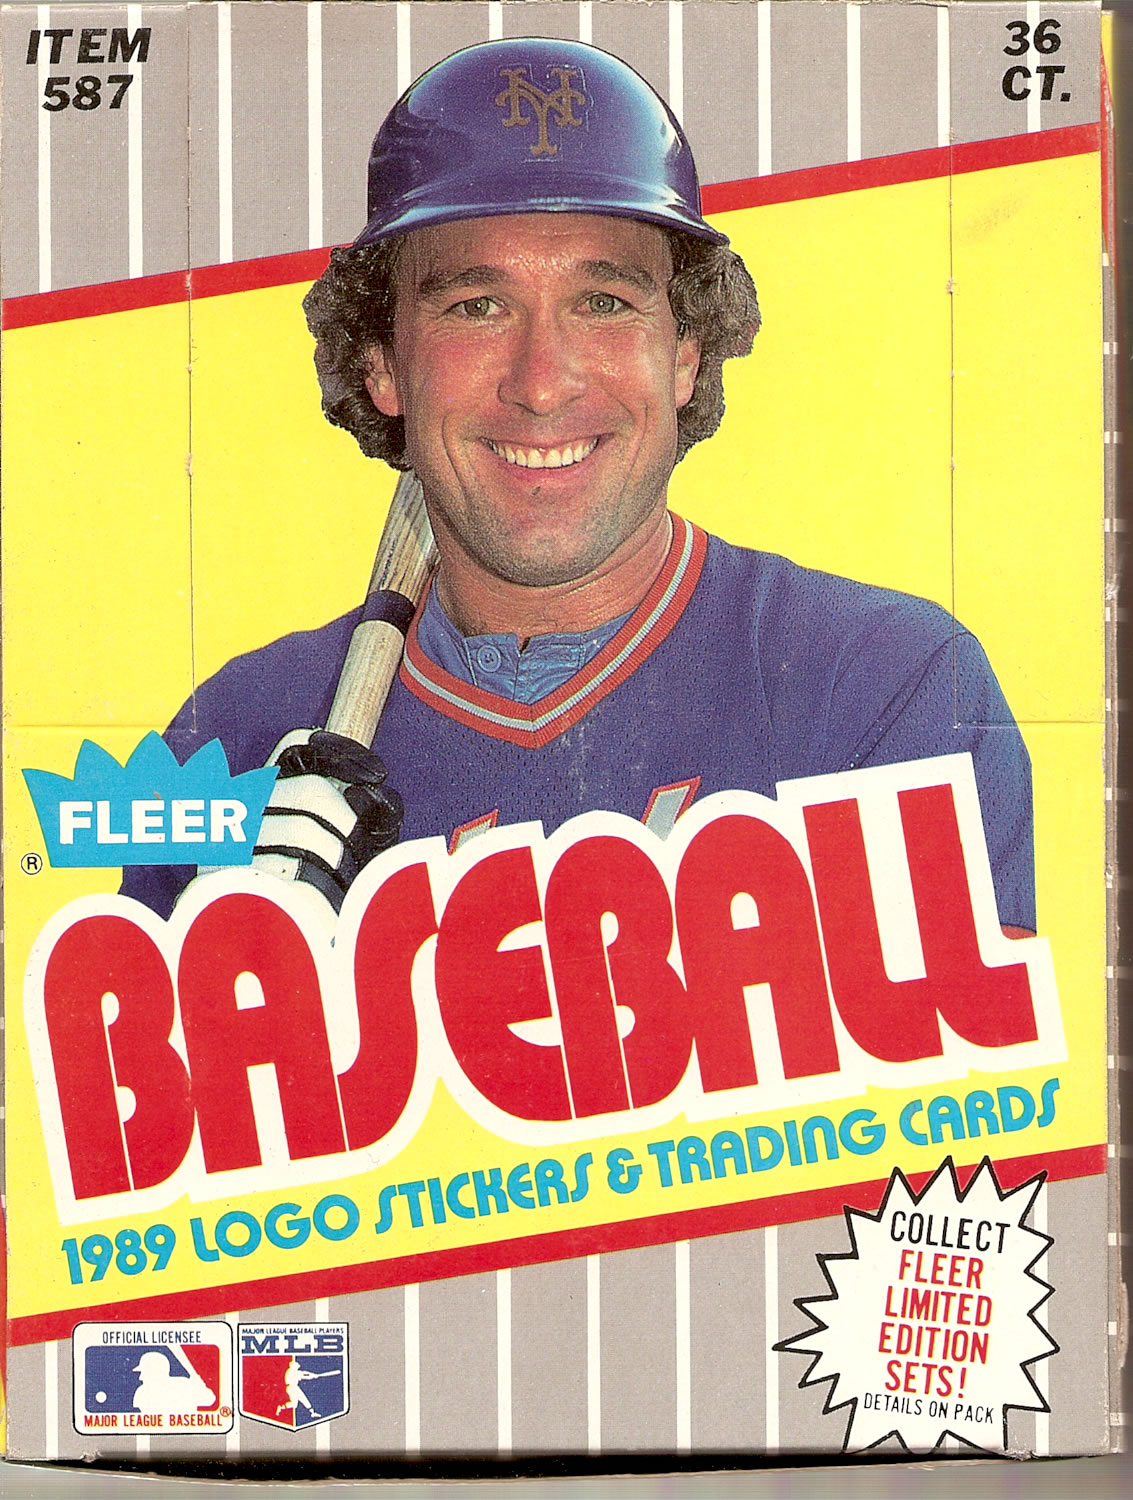 1989 FLEER BASEBALL TRADING CARD BOX